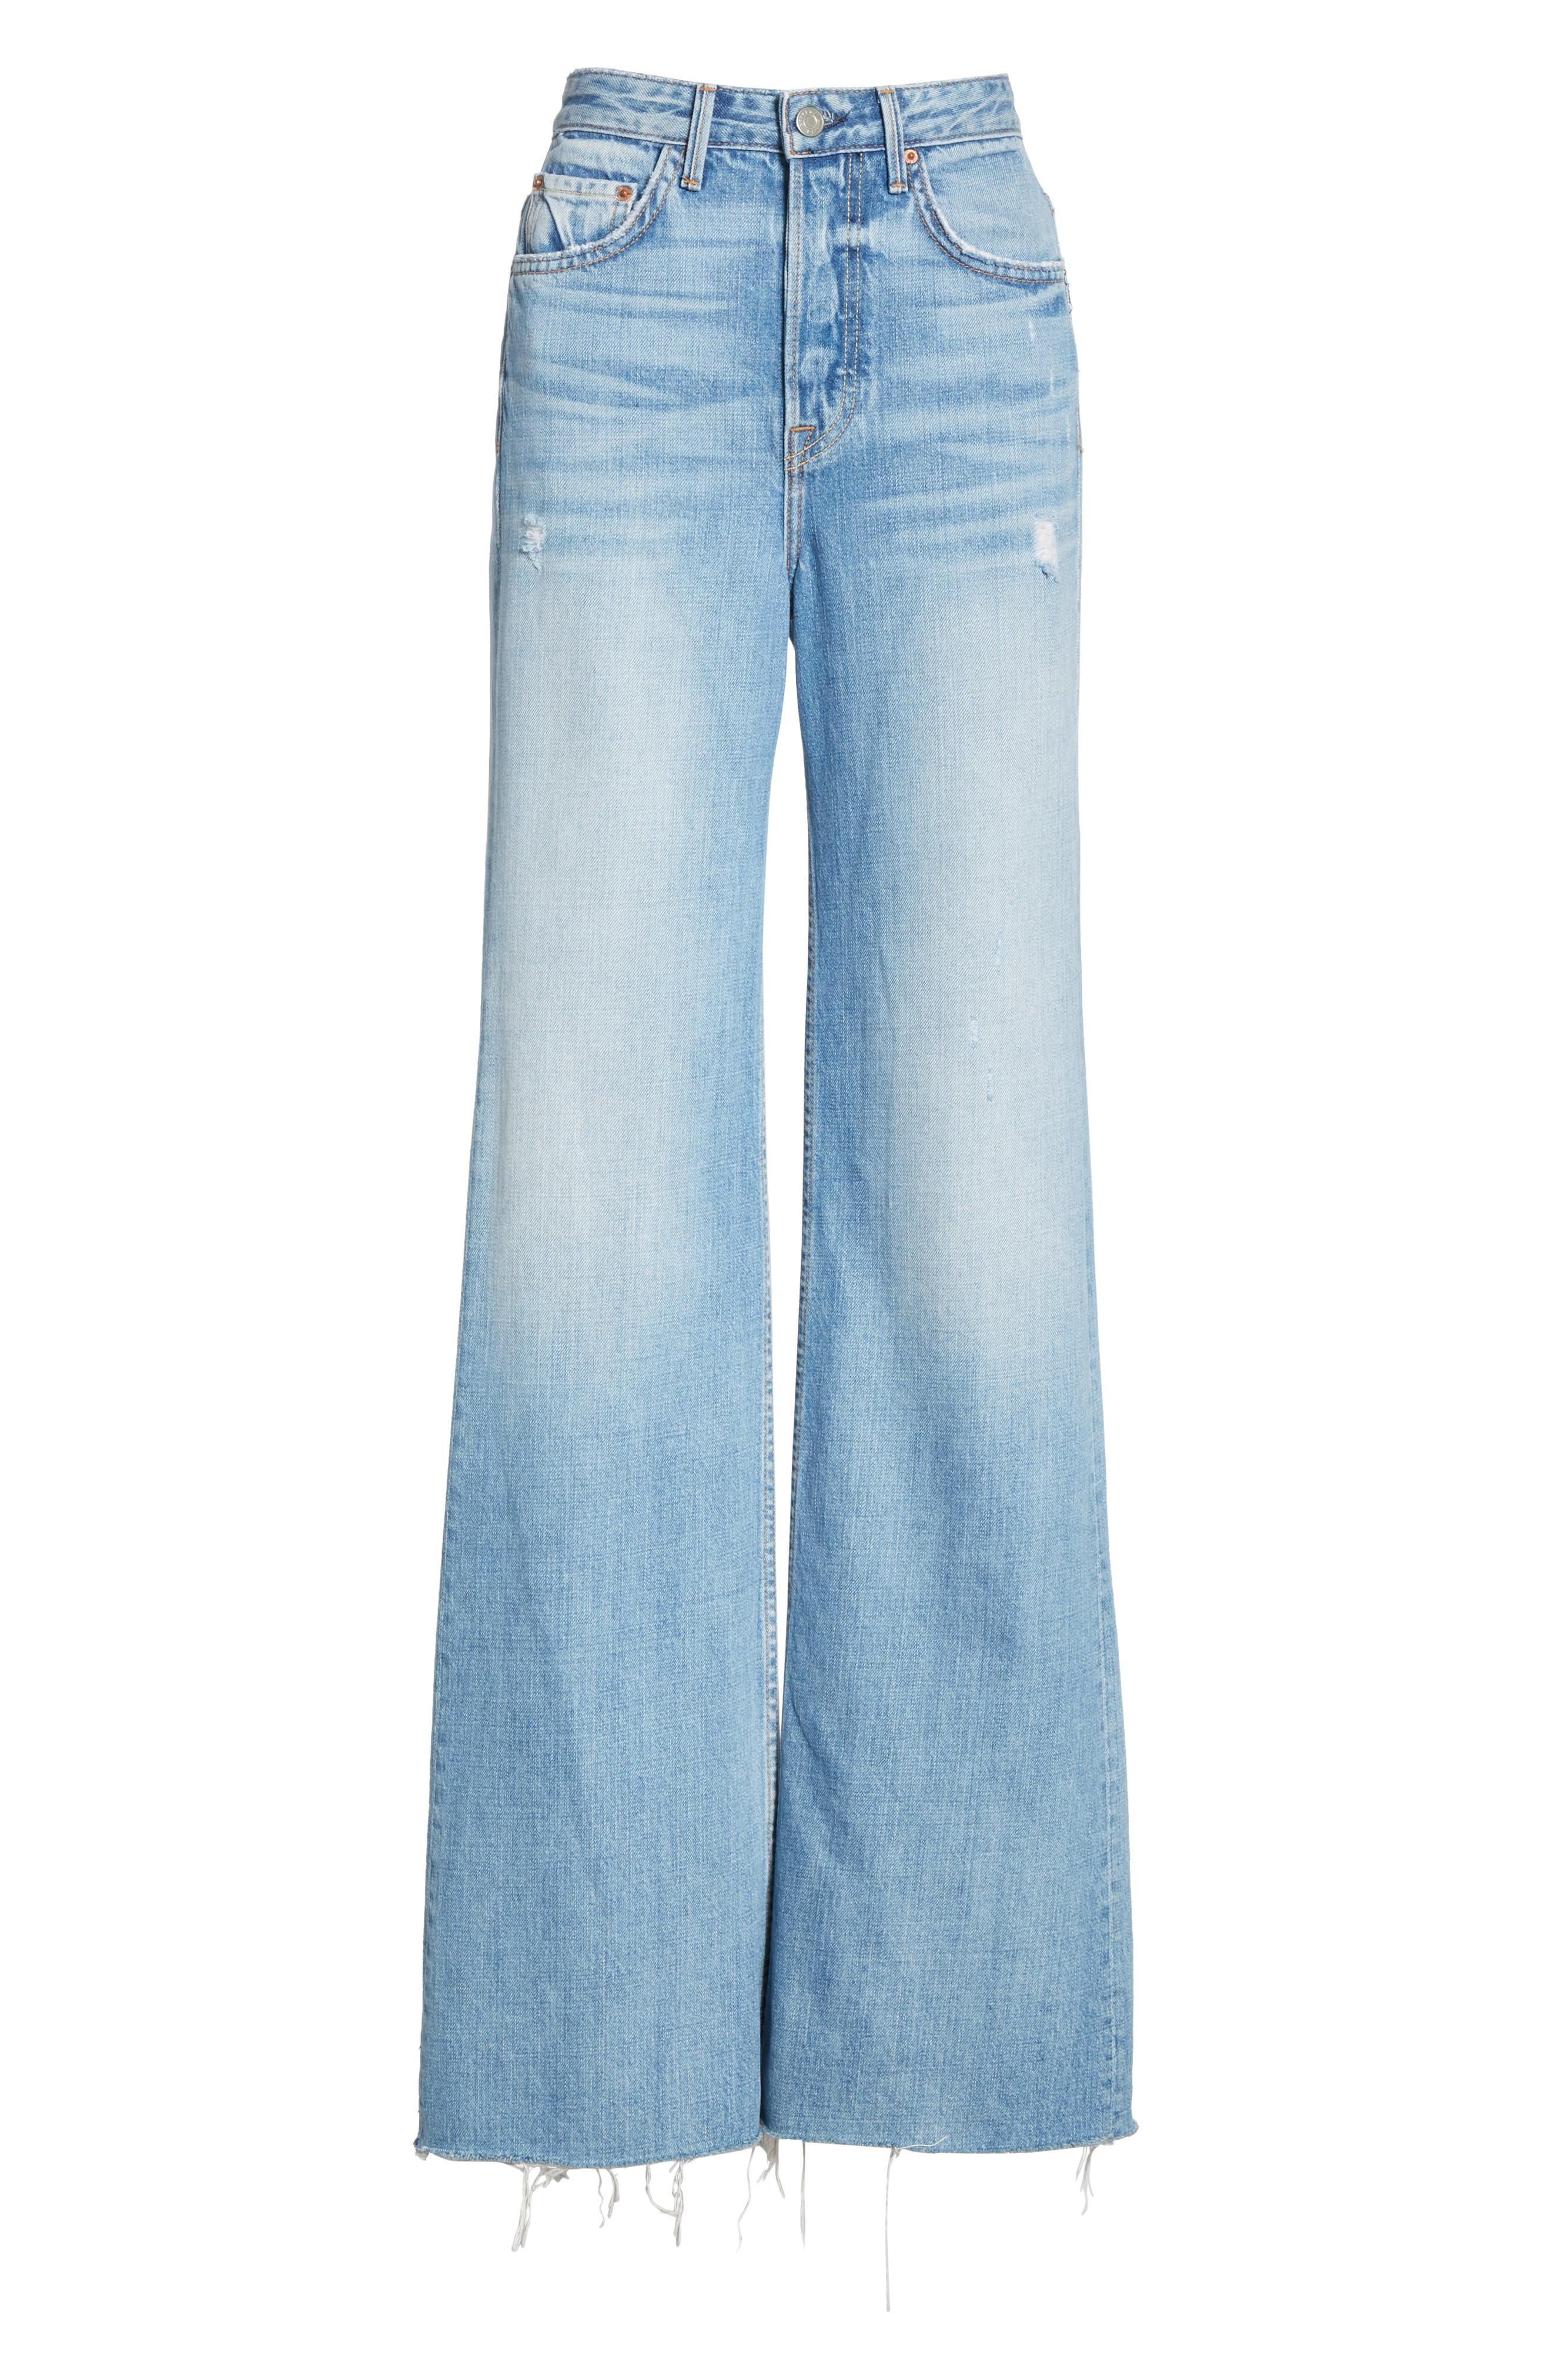 Carla Wide Leg Jeans,                             Alternate thumbnail 7, color,                             GONNA FLY NOW